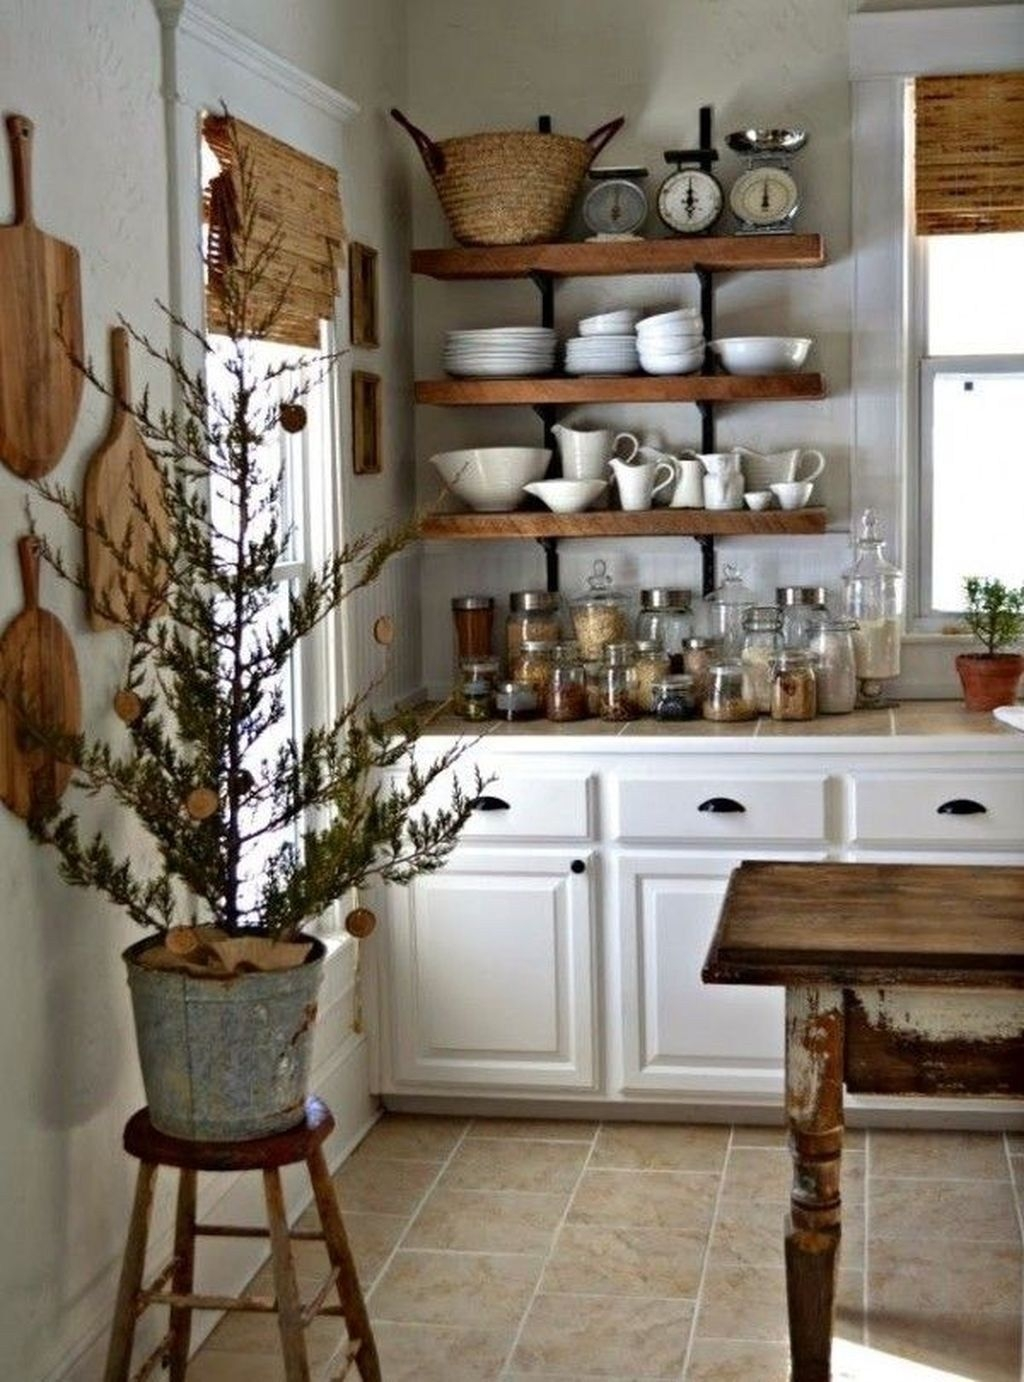 The Best French Country Style Kitchen Decor Ideas 06